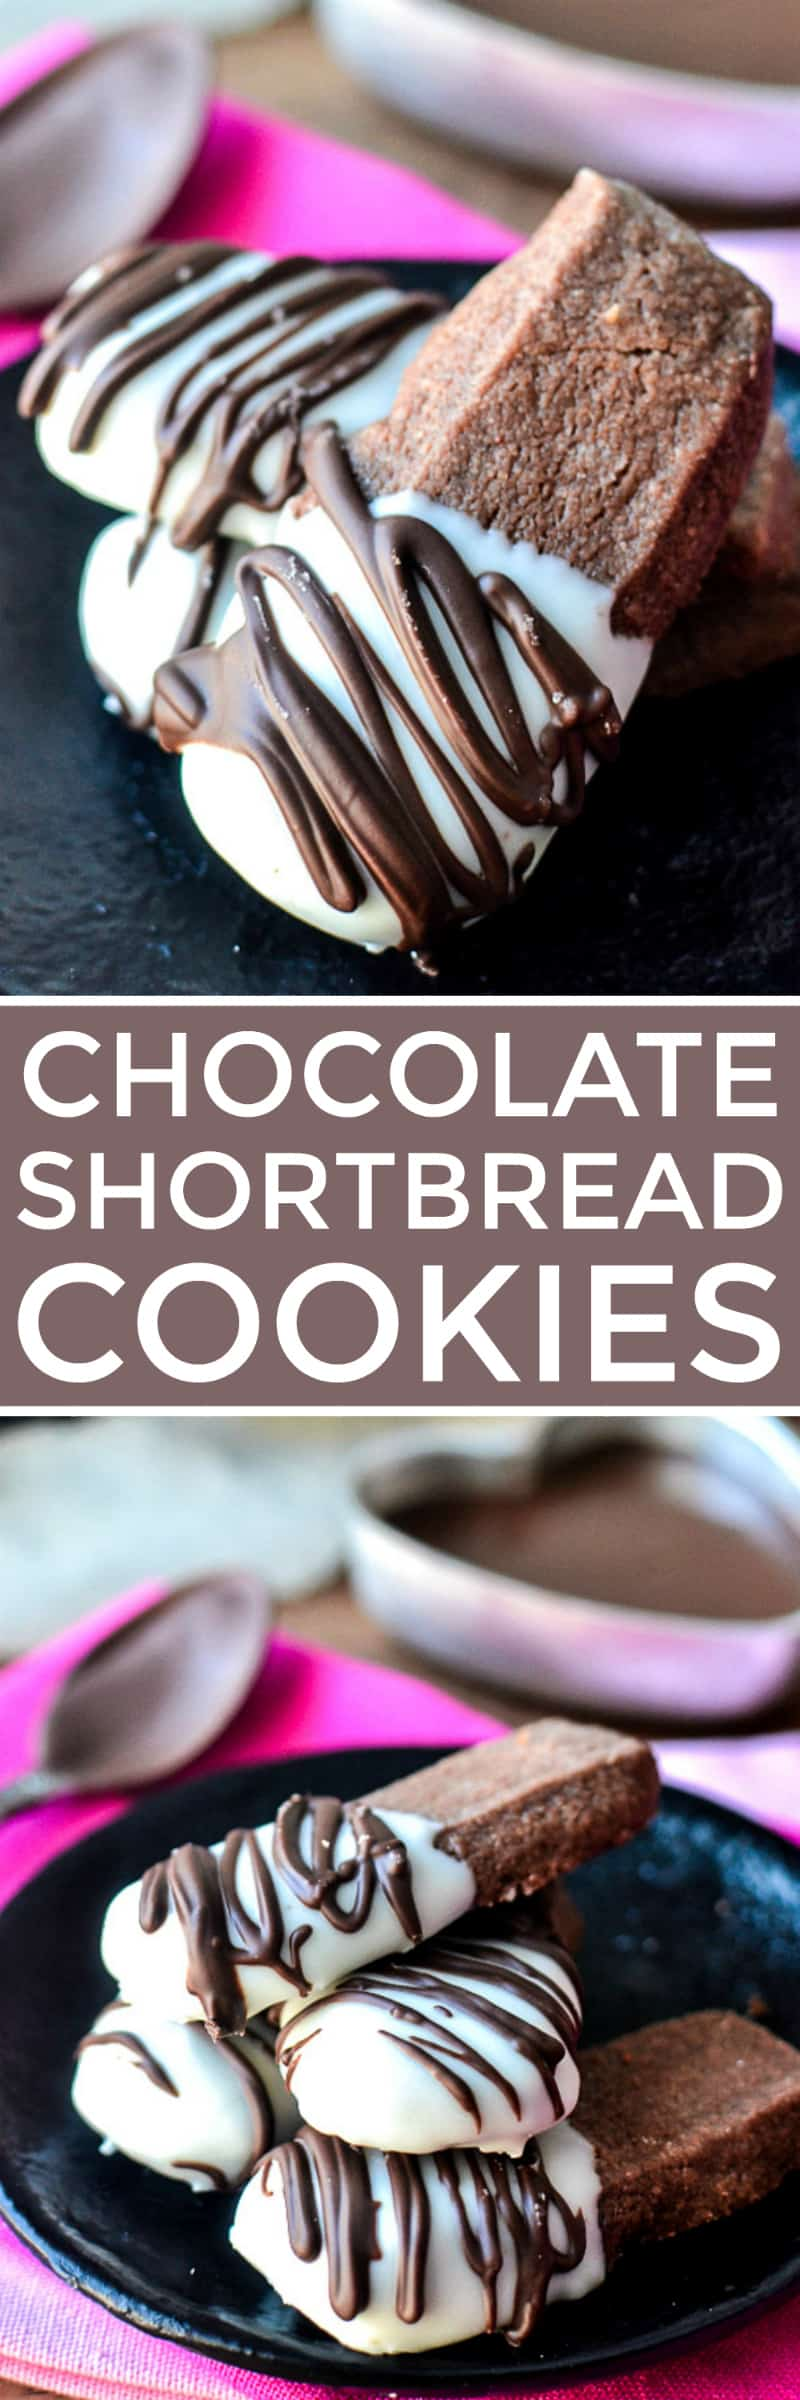 Collage image of Chocolate Shortbread Cookies